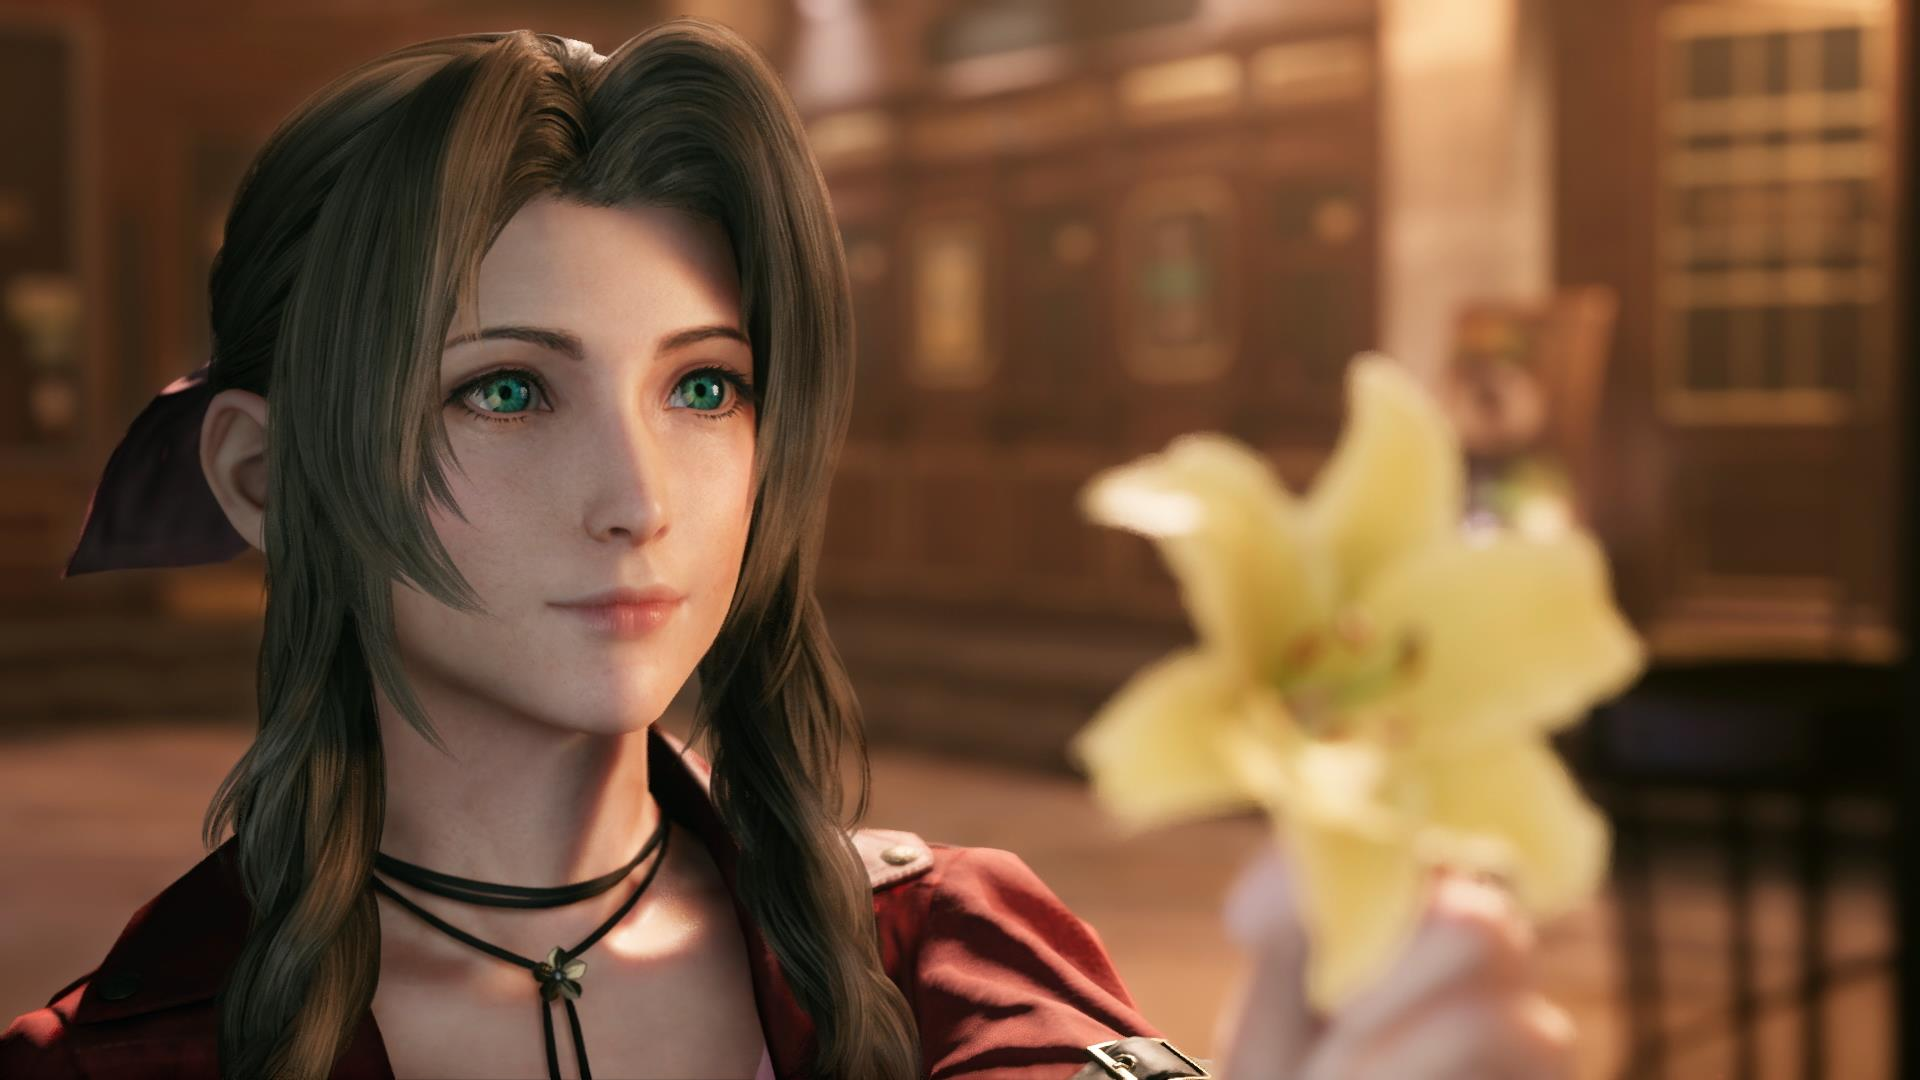 ff7-remake-part-2-news,-rumors-and-what-we-want-to-see